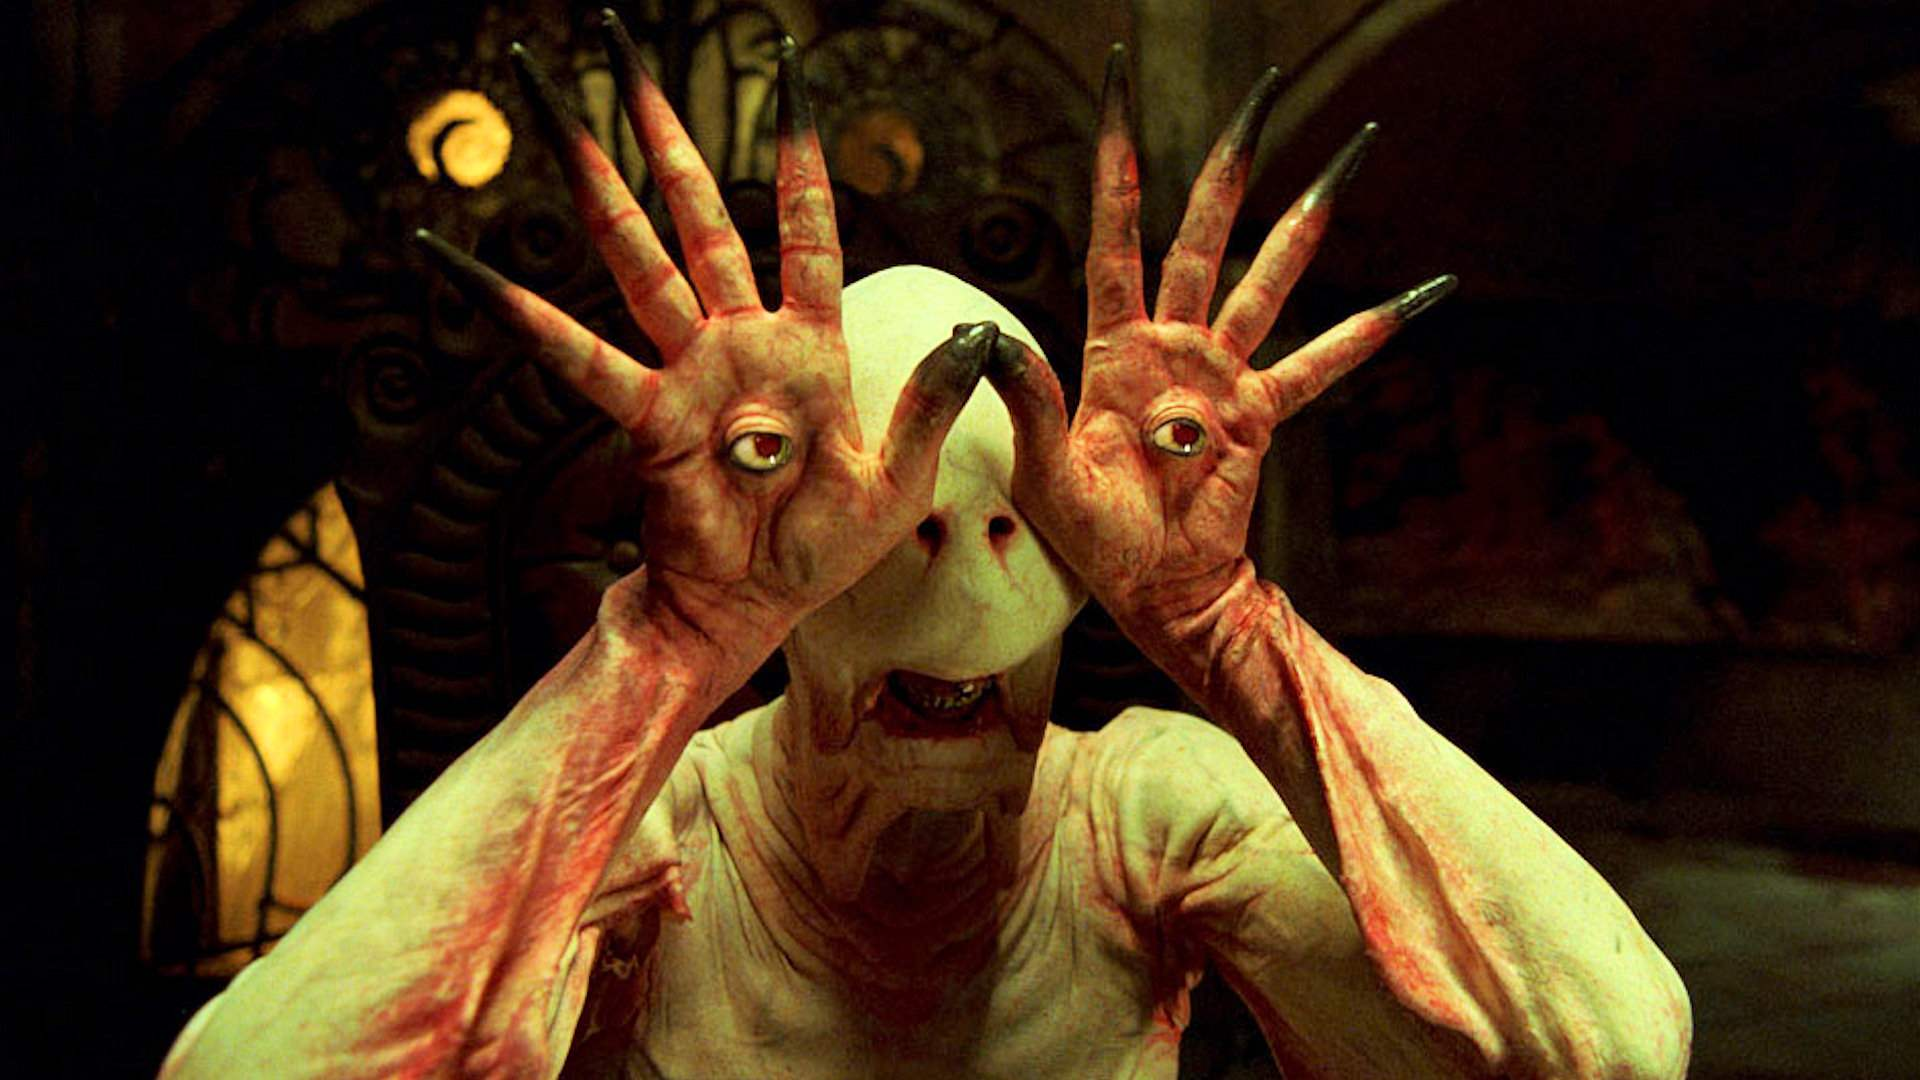 The Pale Man in Pan's Labyrinth